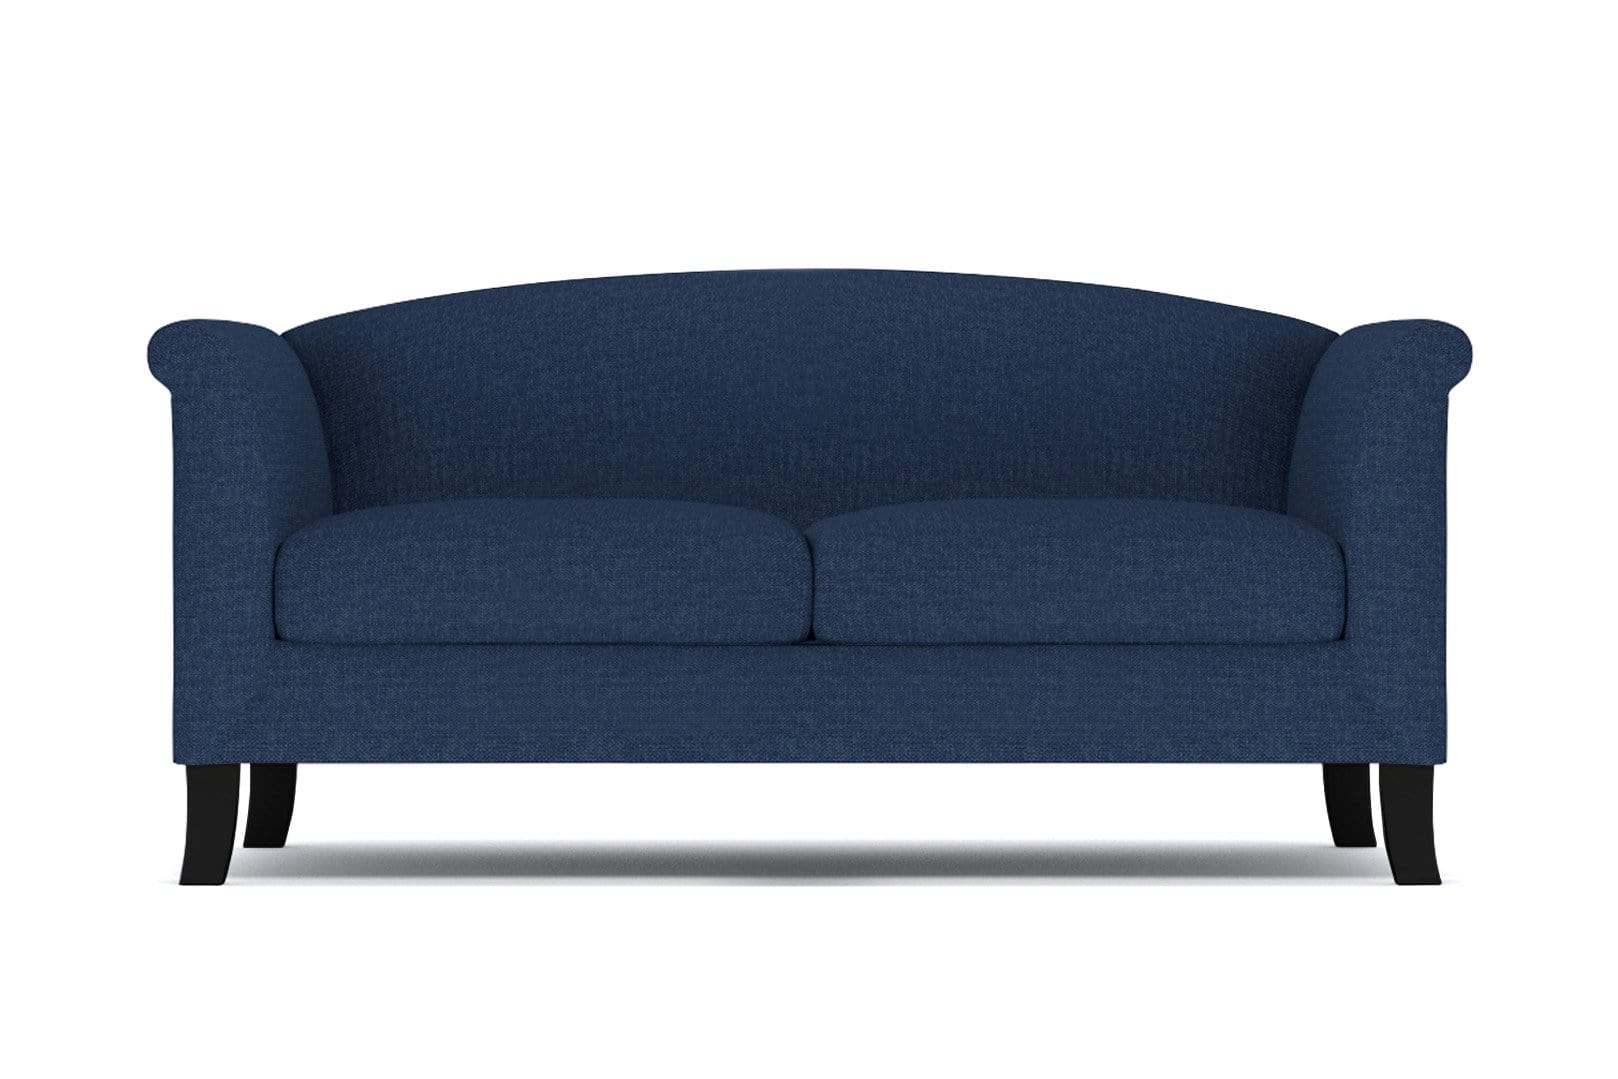 Albright_Apartment_Size_Sofa__Dark_Blue___Small_Space_Modern_Couch_Made_in_the_USA__Sold_by_Apt2B